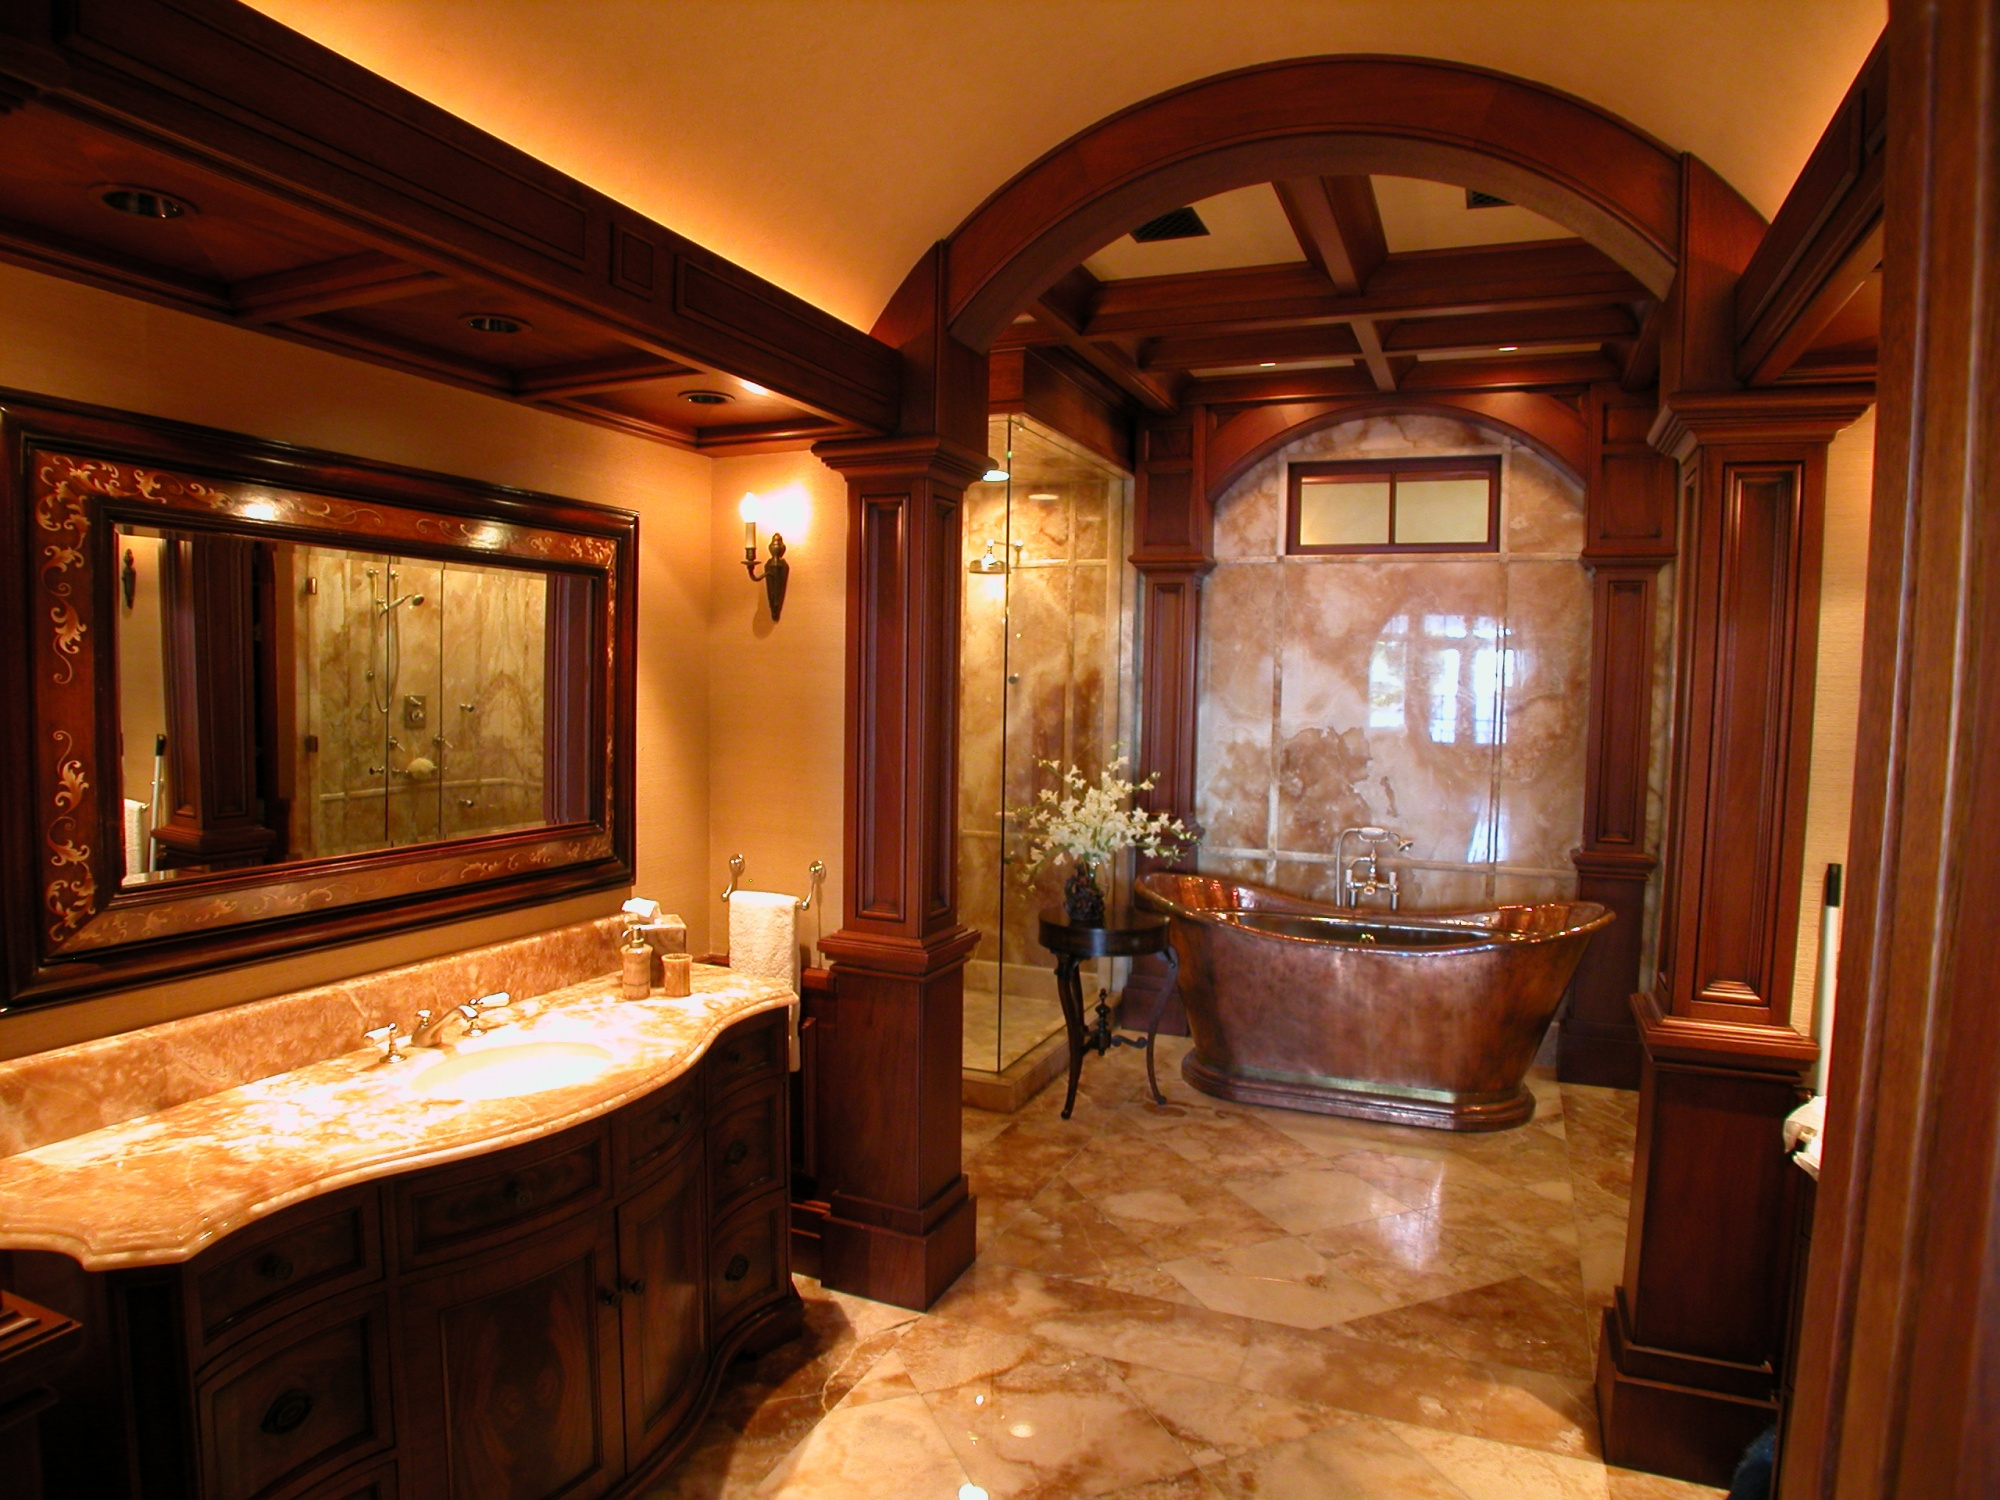 Custom built vanities with onyx tops in the master bathroom.